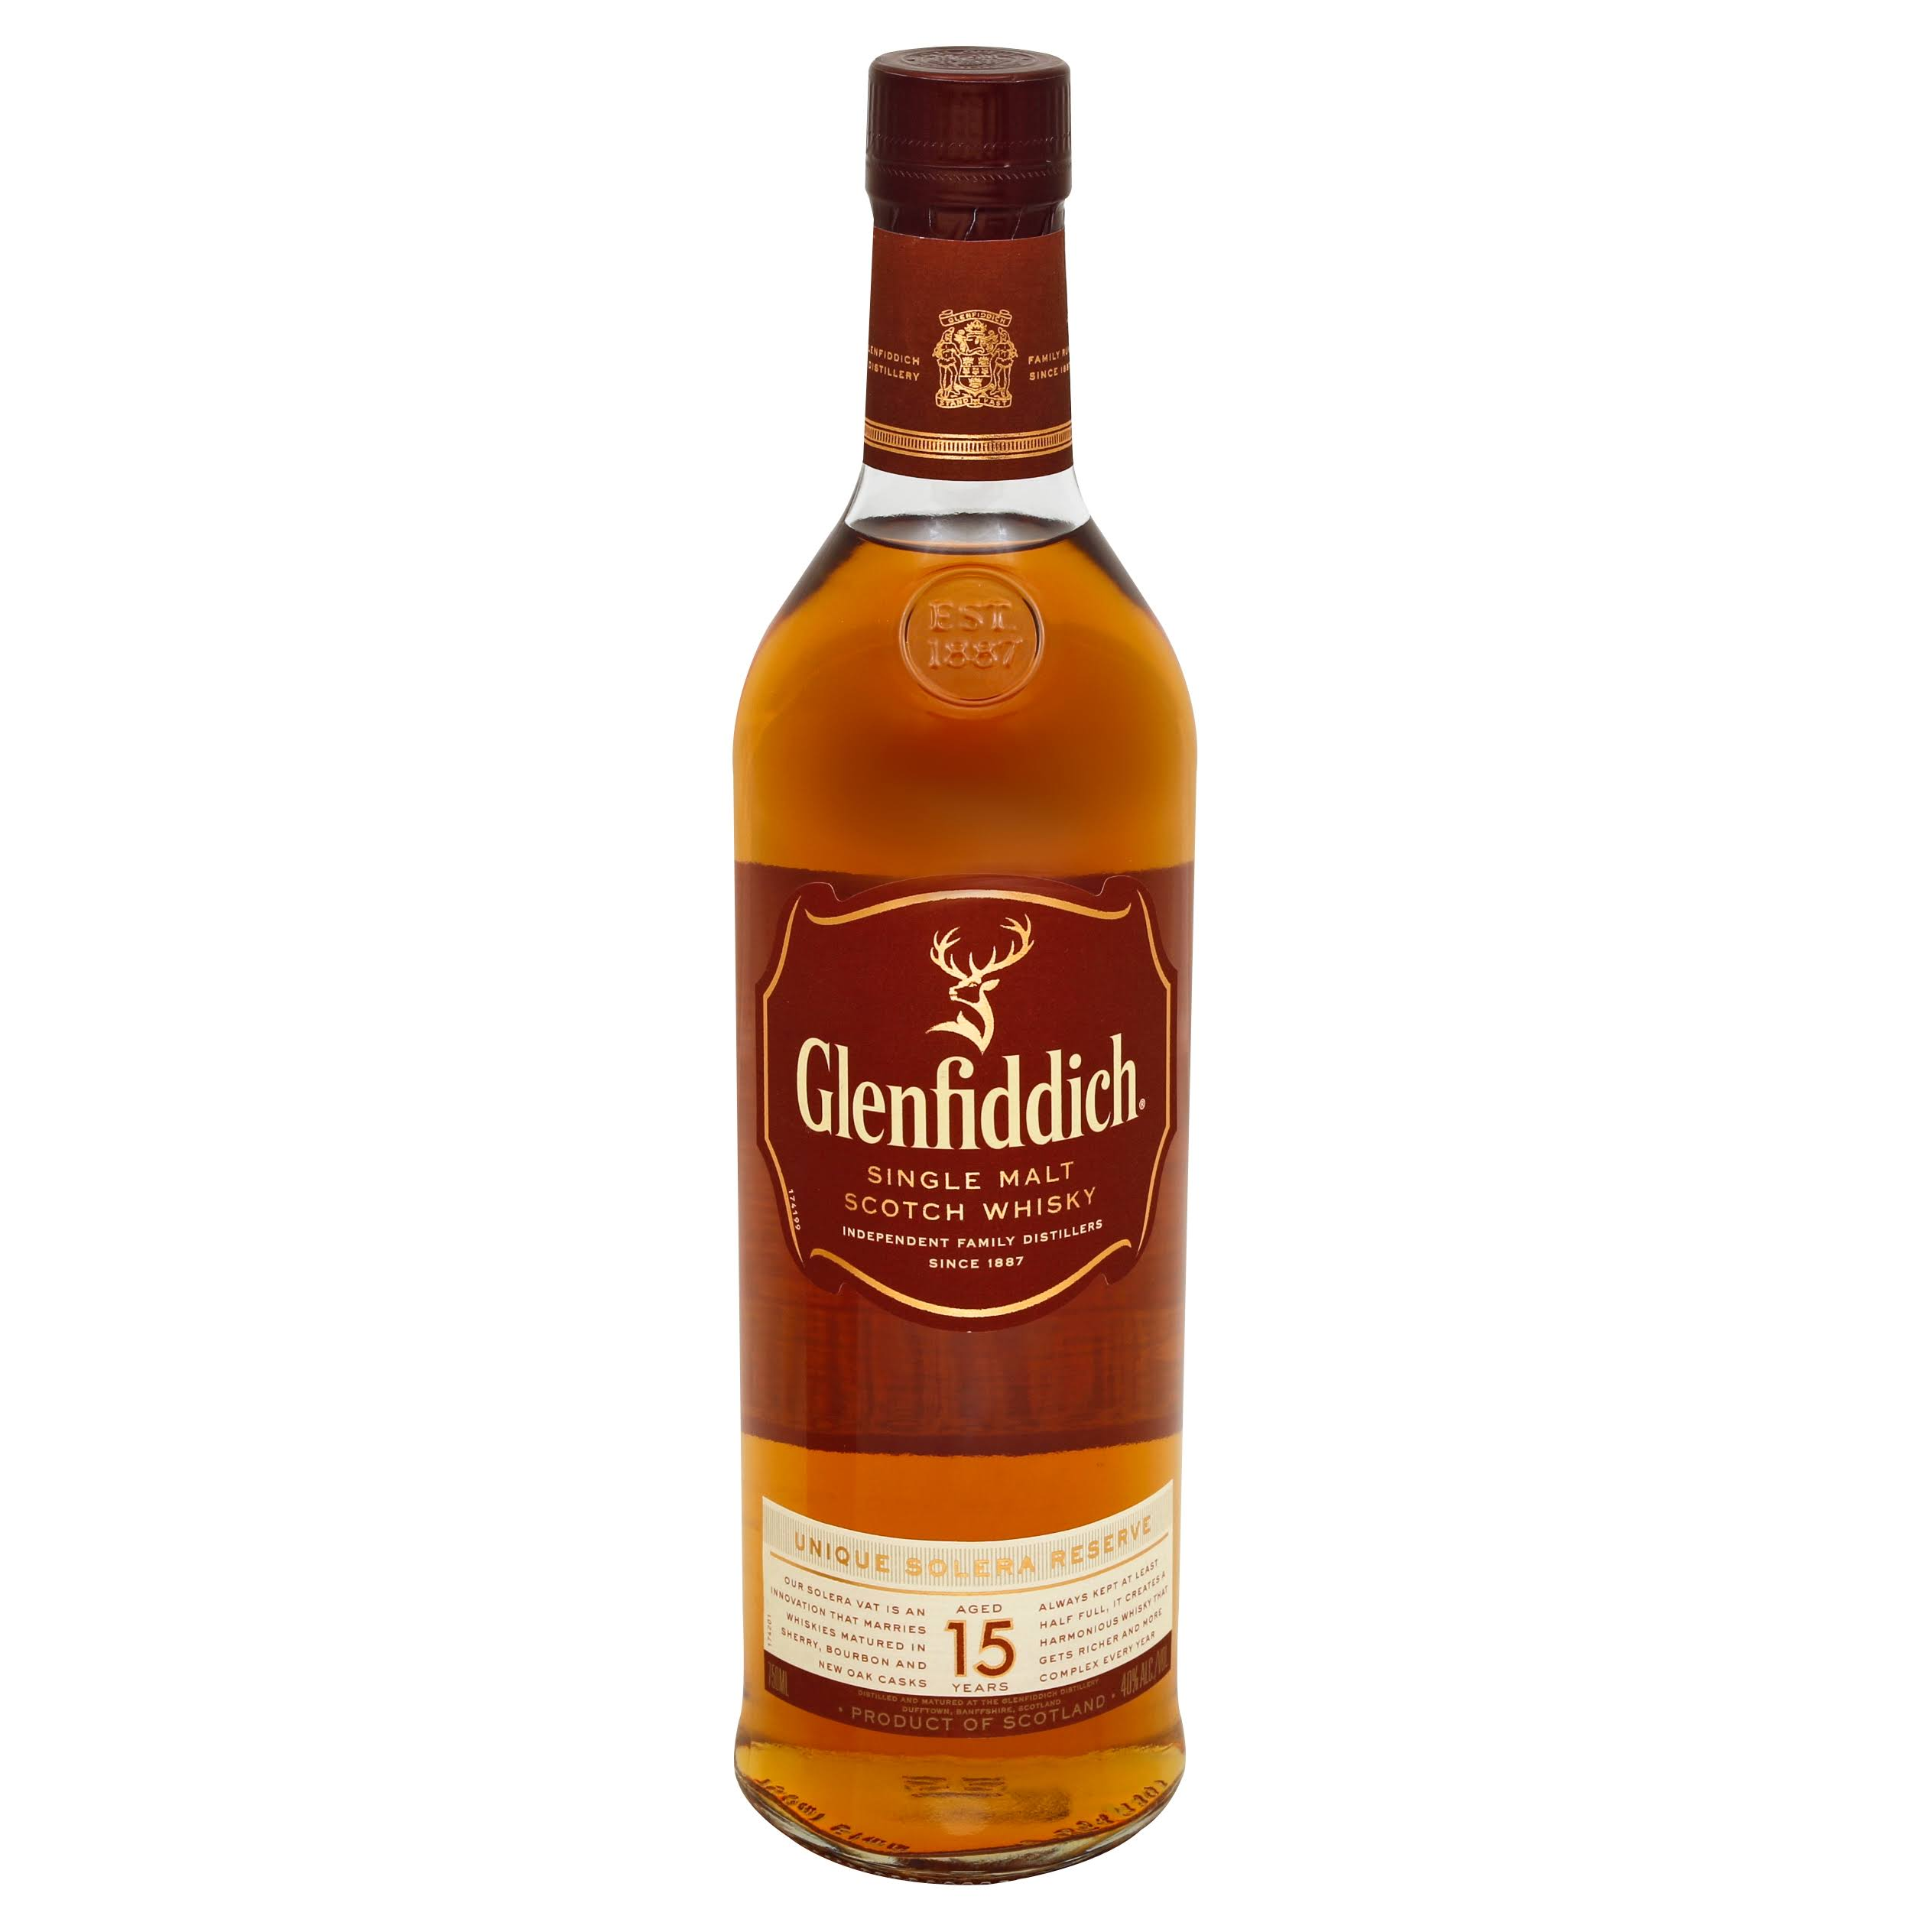 Glenfiddich Scotch Whisky, Single Malt, Aged 15 Years - 750 ml